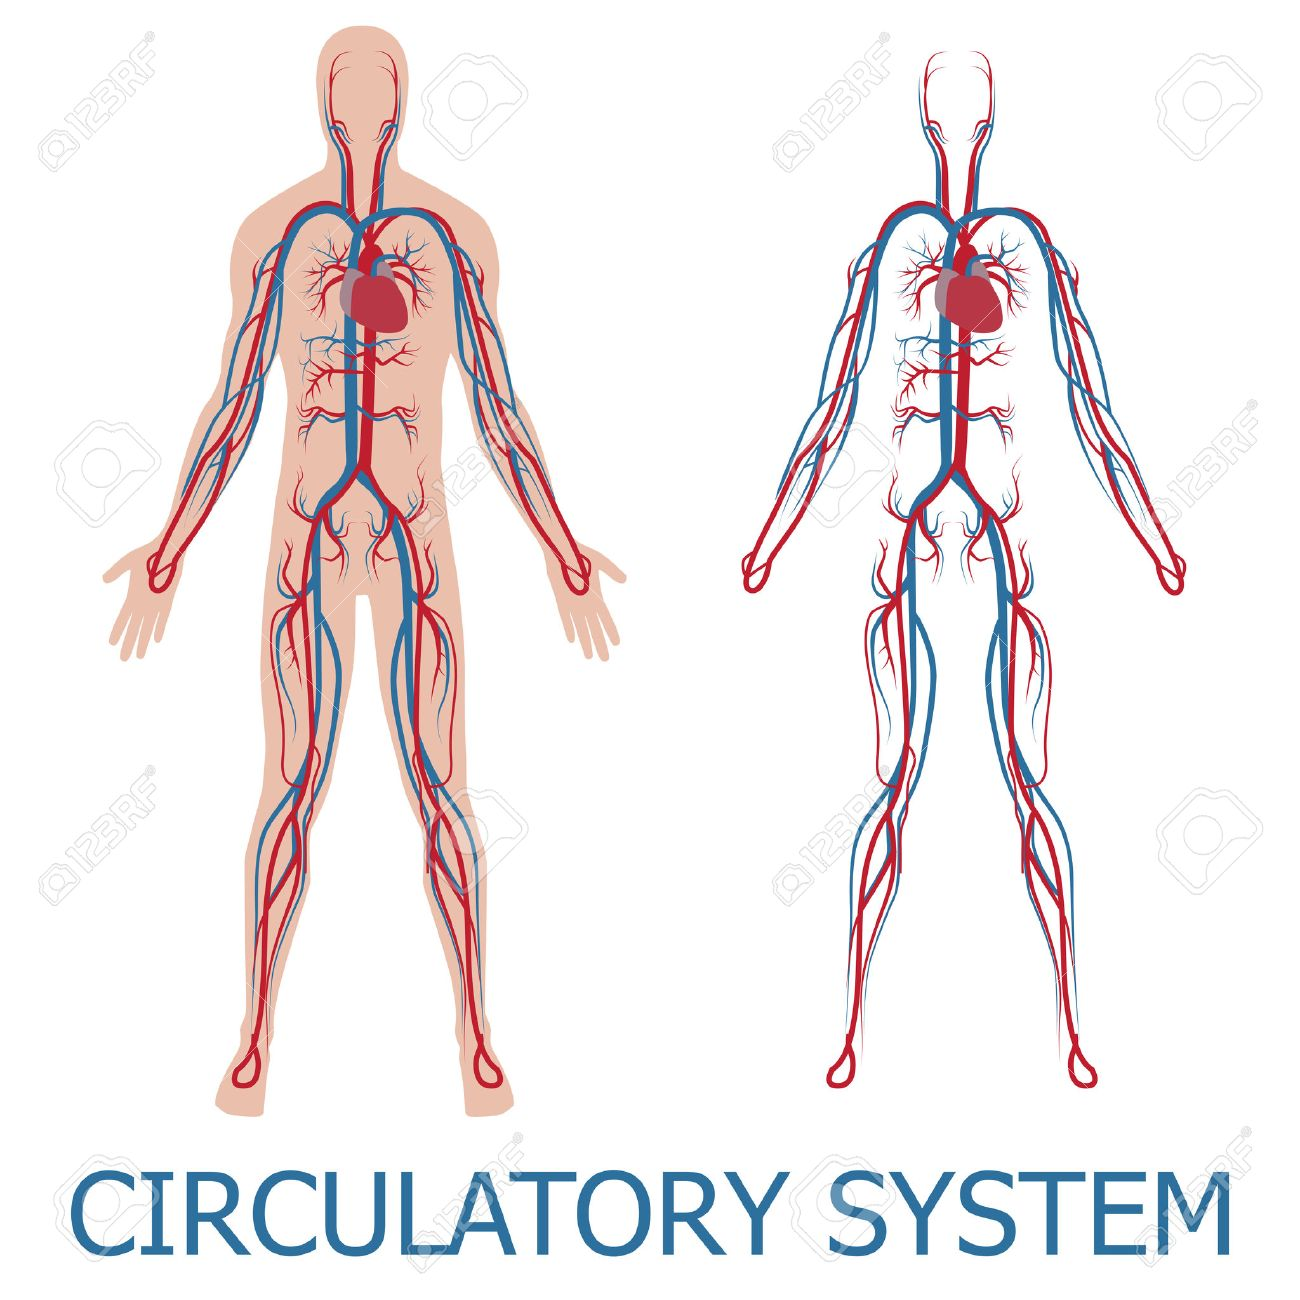 Human Circulatory System Illustration Of Blood Circulation In